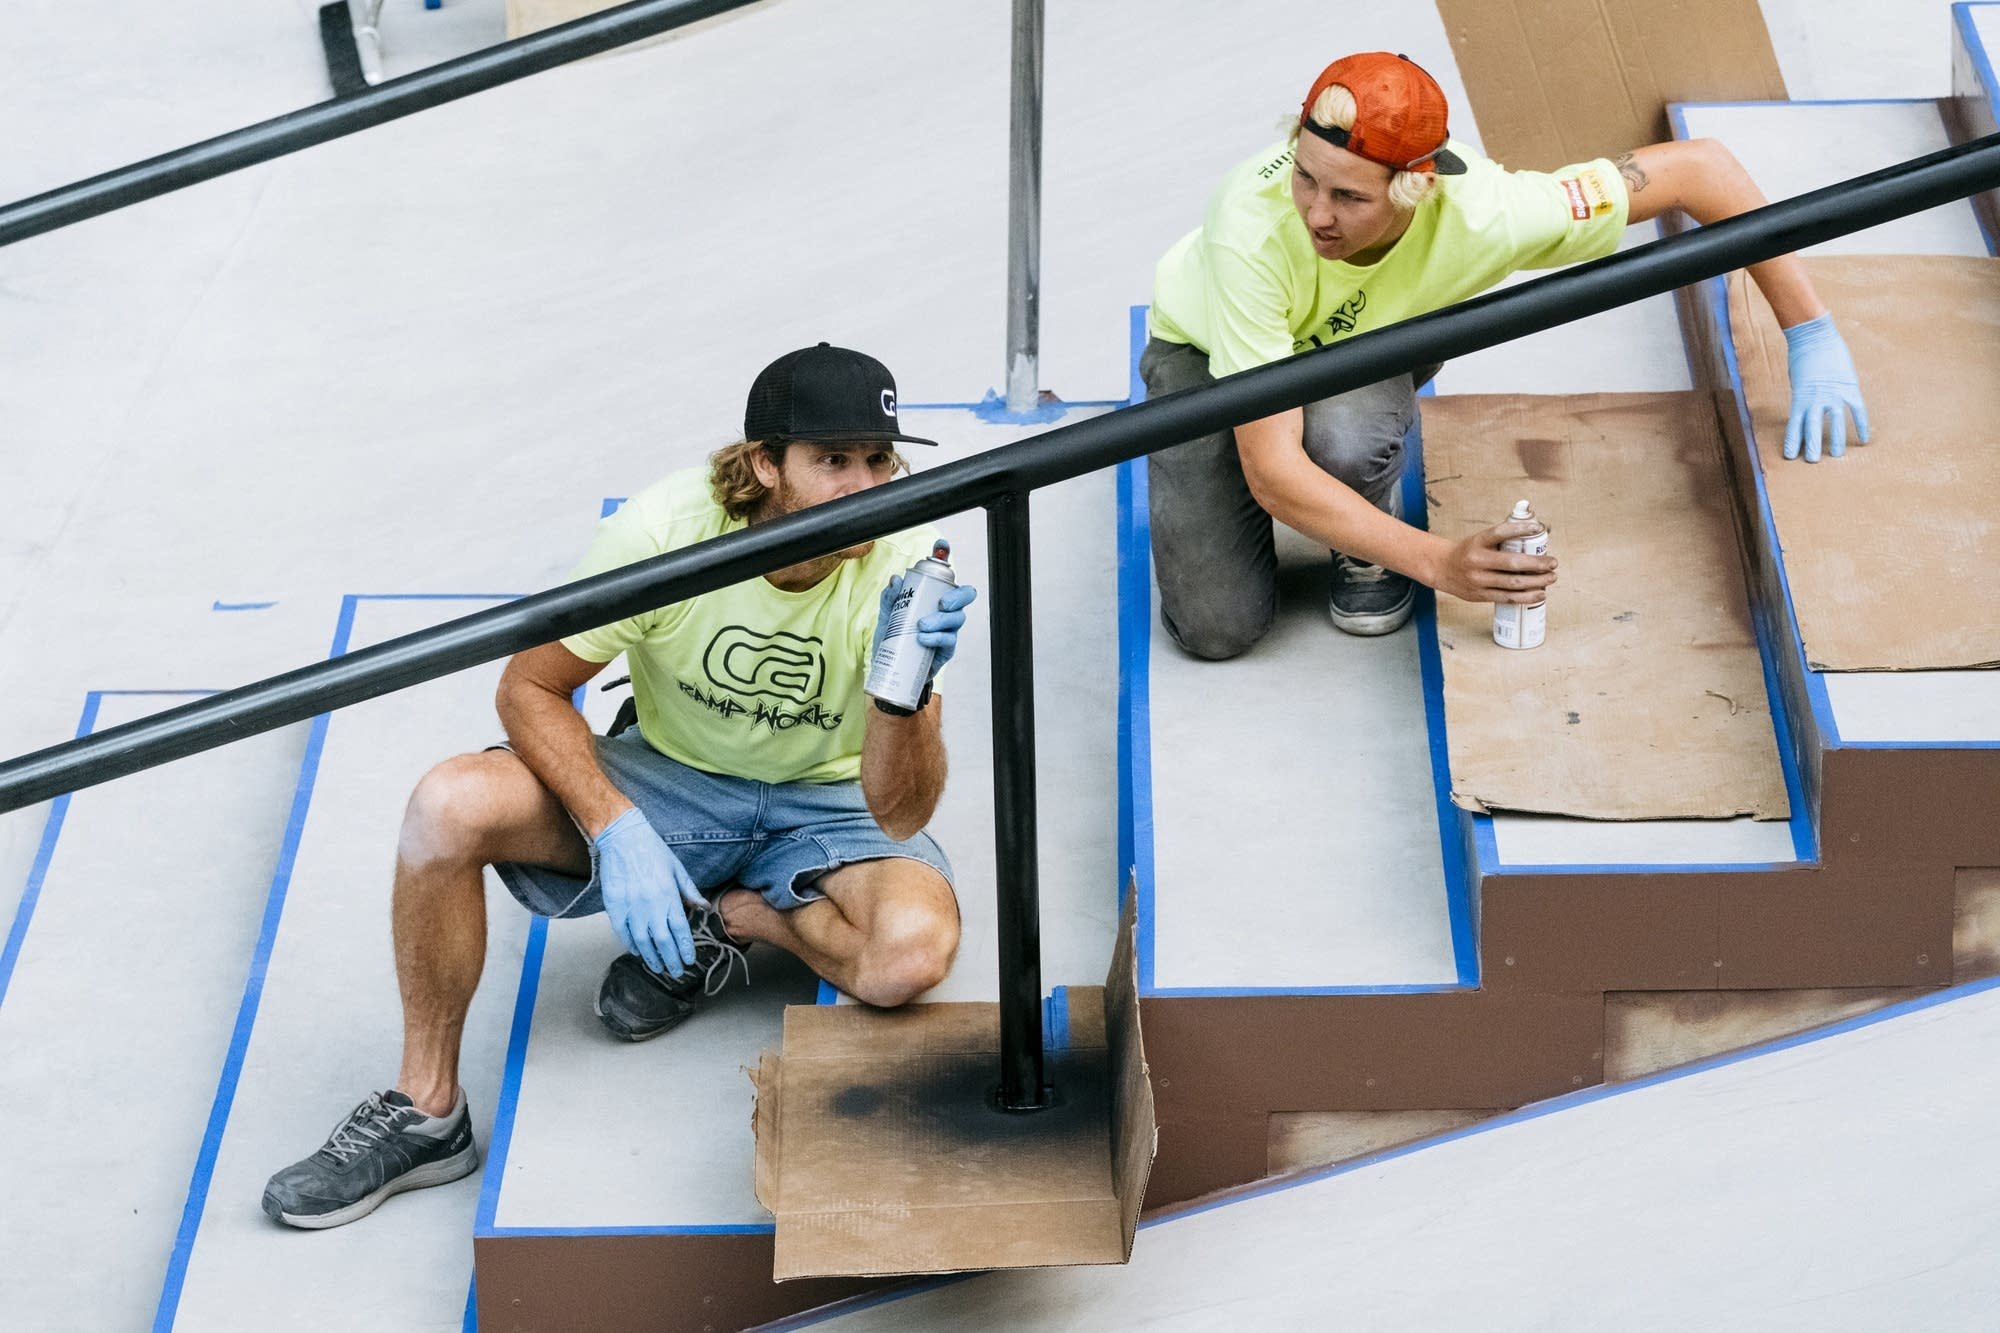 Workers spray paint a rail.